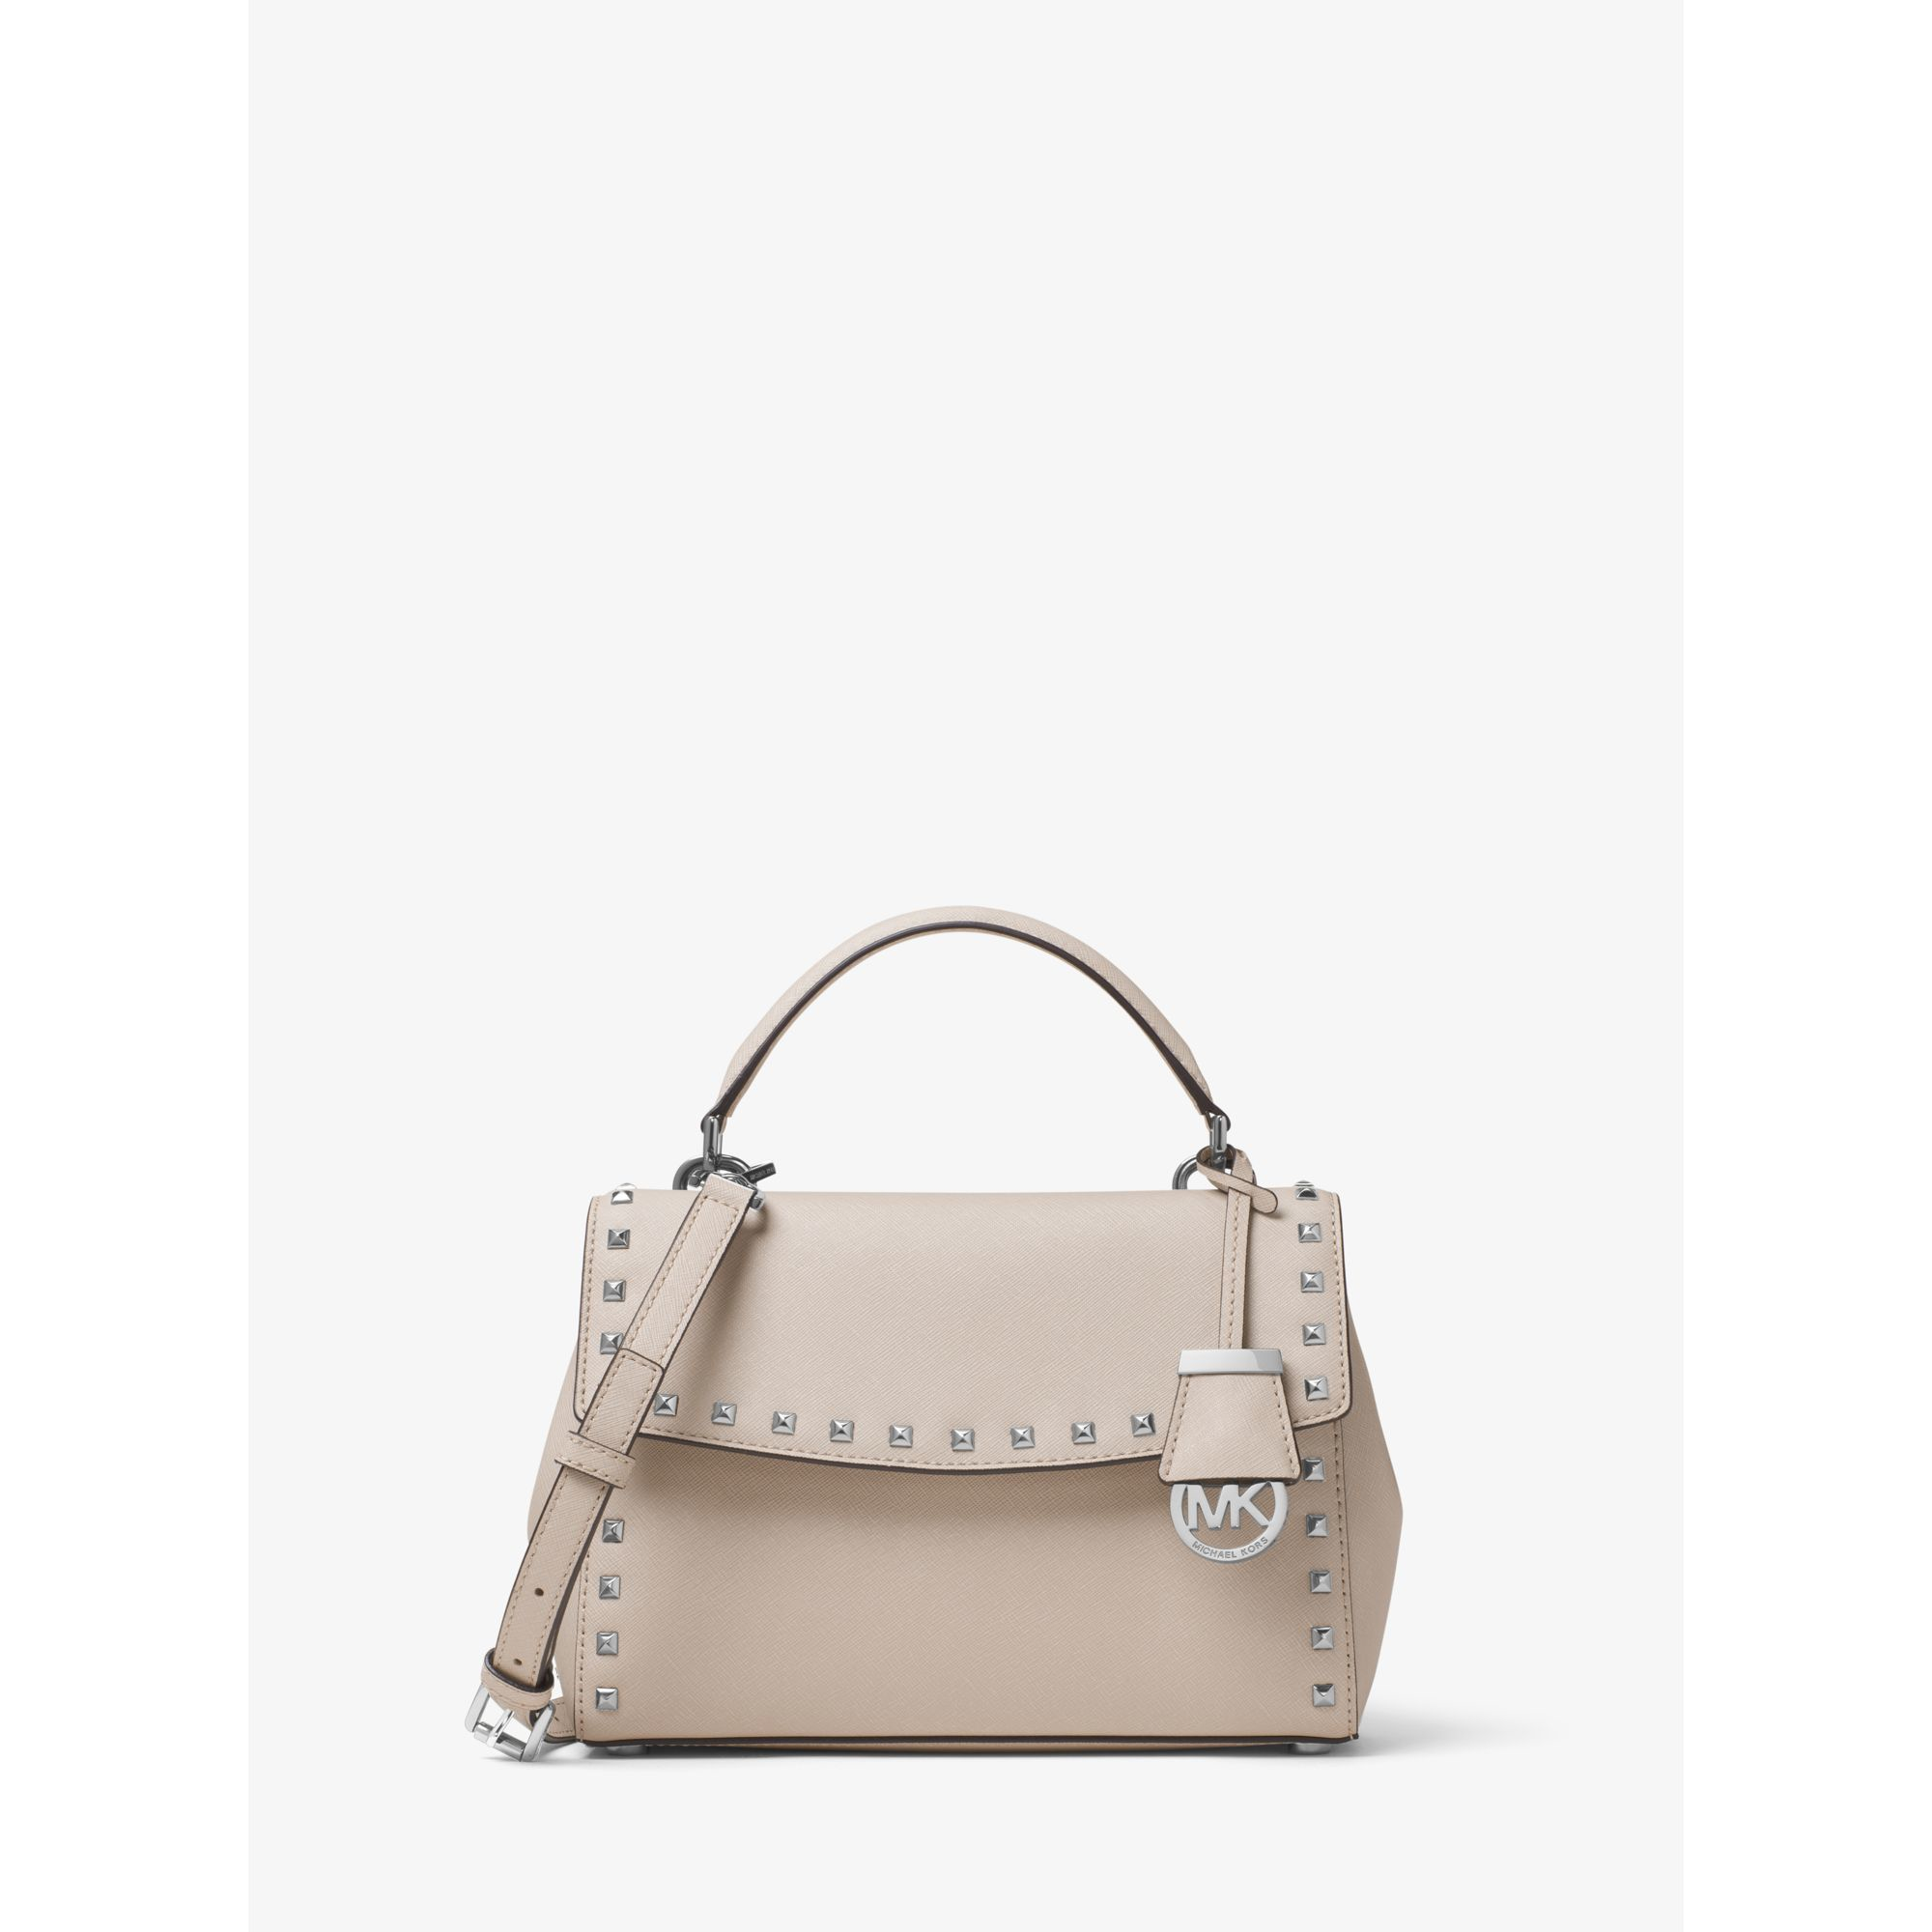 3285668b04a6 Michael Kors Ava Small Studded Leather Satchel in Natural - Lyst